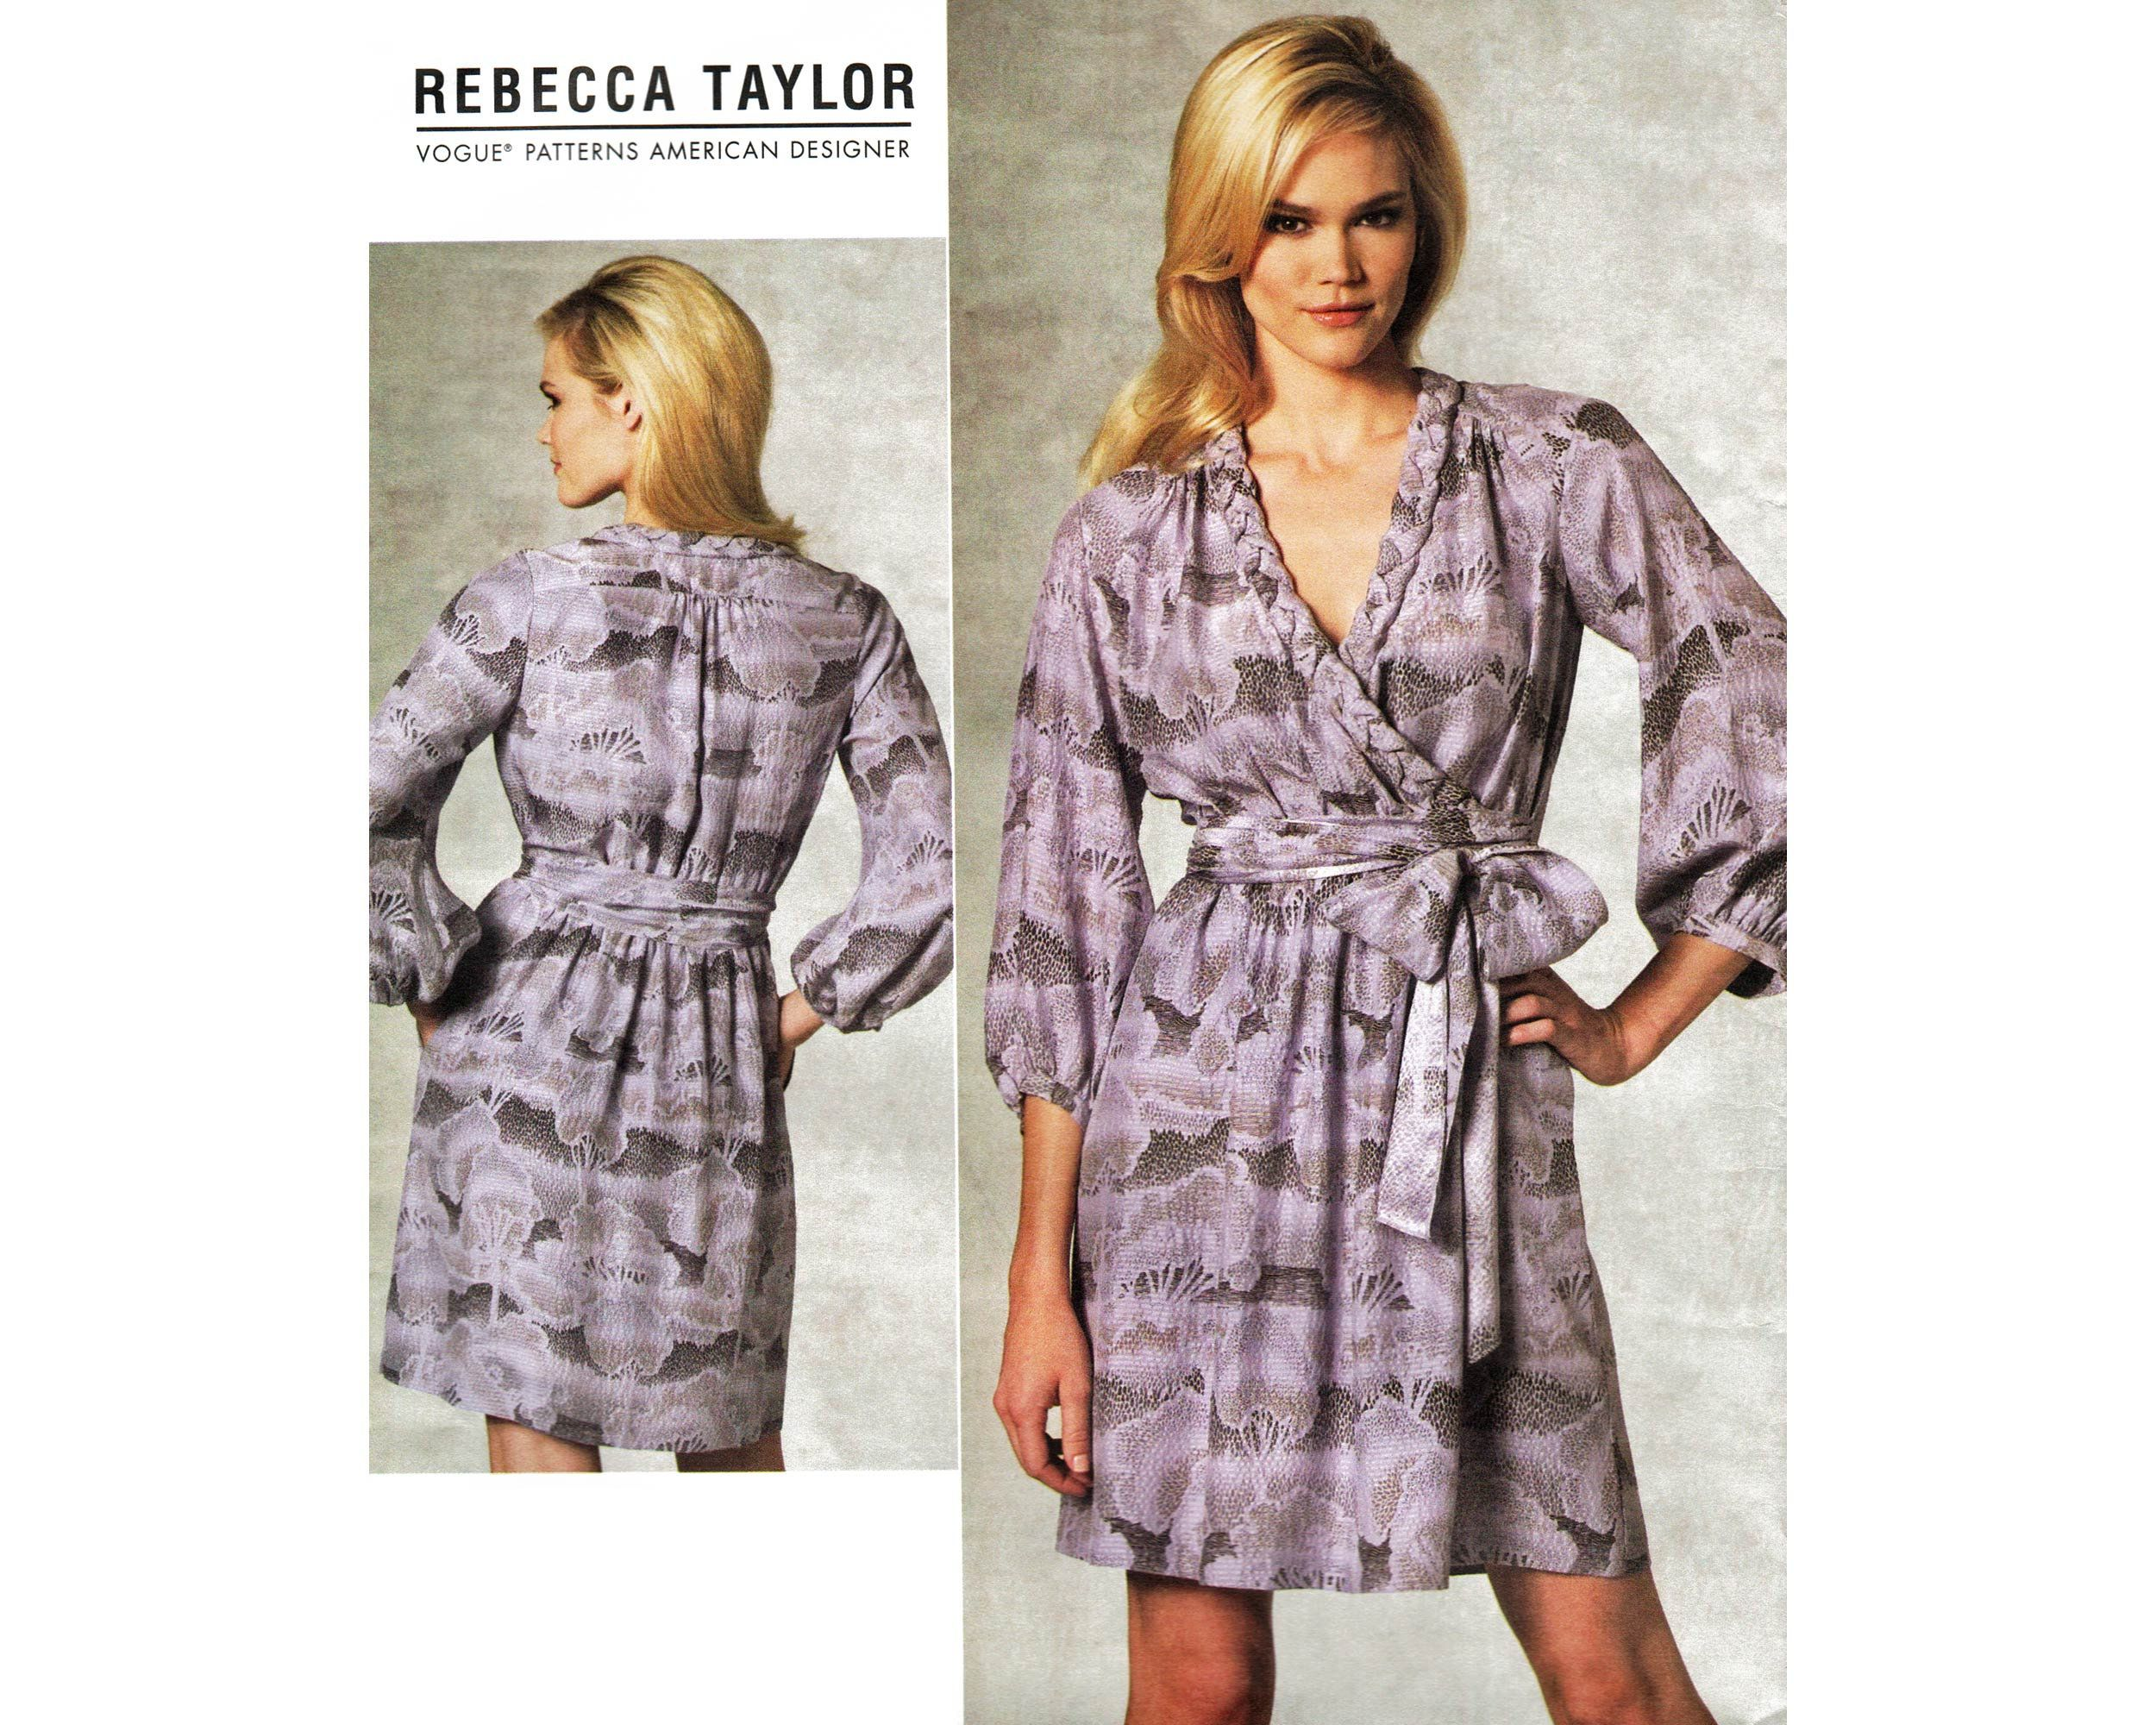 Vogue Pattern For Wrap Dress By Rebecca Taylor Easy Vogue Etsy Wrap Dress Pattern Dress Sewing Patterns Vogue Sewing Patterns [ 2000 x 2500 Pixel ]